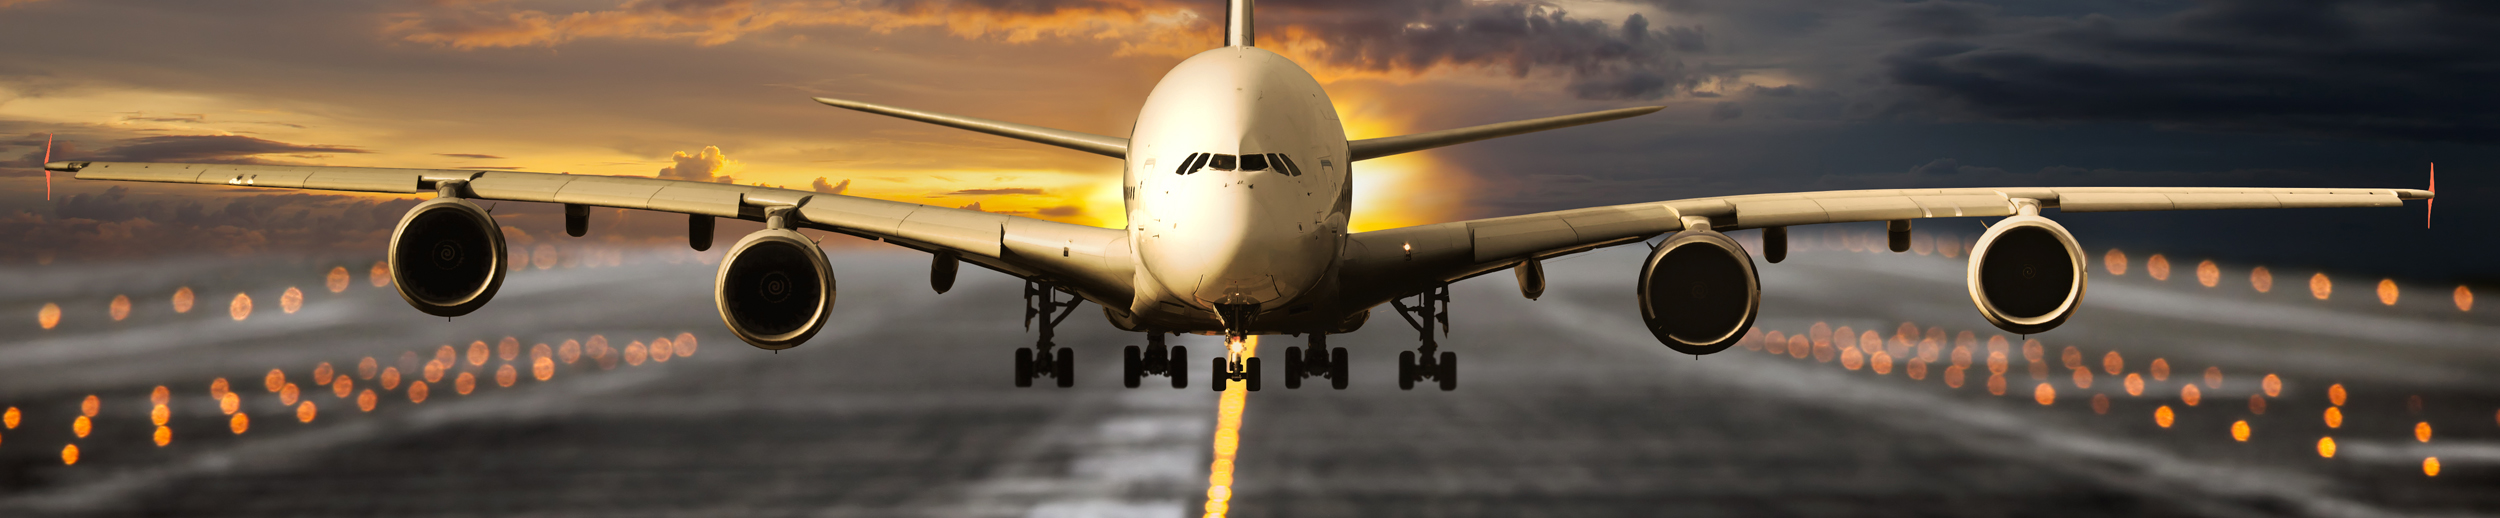 Opgal enhanced vision systems for commercial aircraft